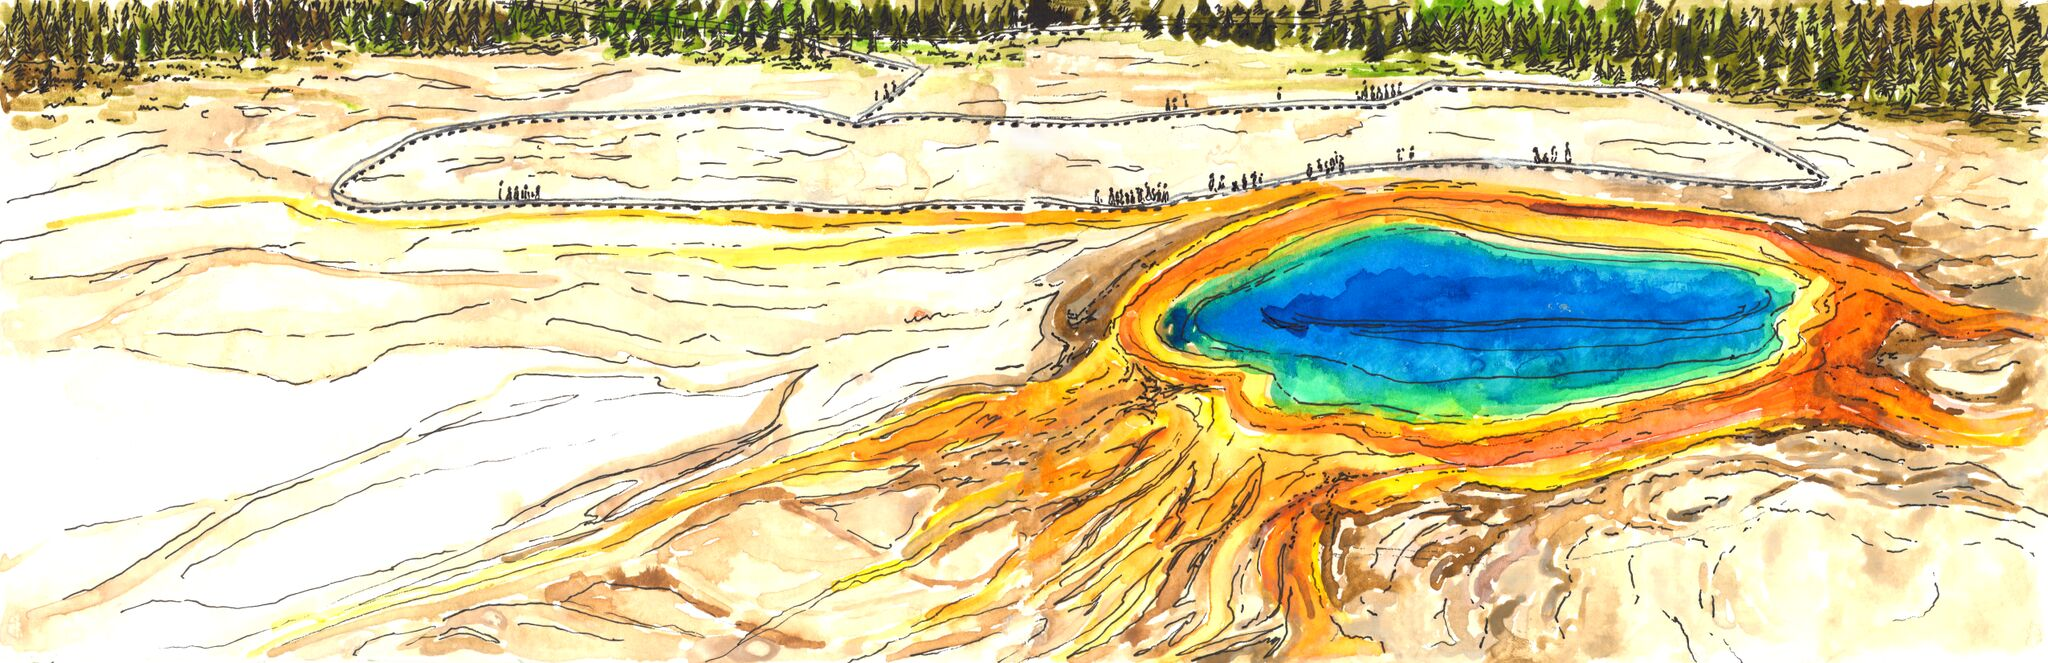 Grand-Prismatic-Spring-17x5.5-600_preview.jpeg